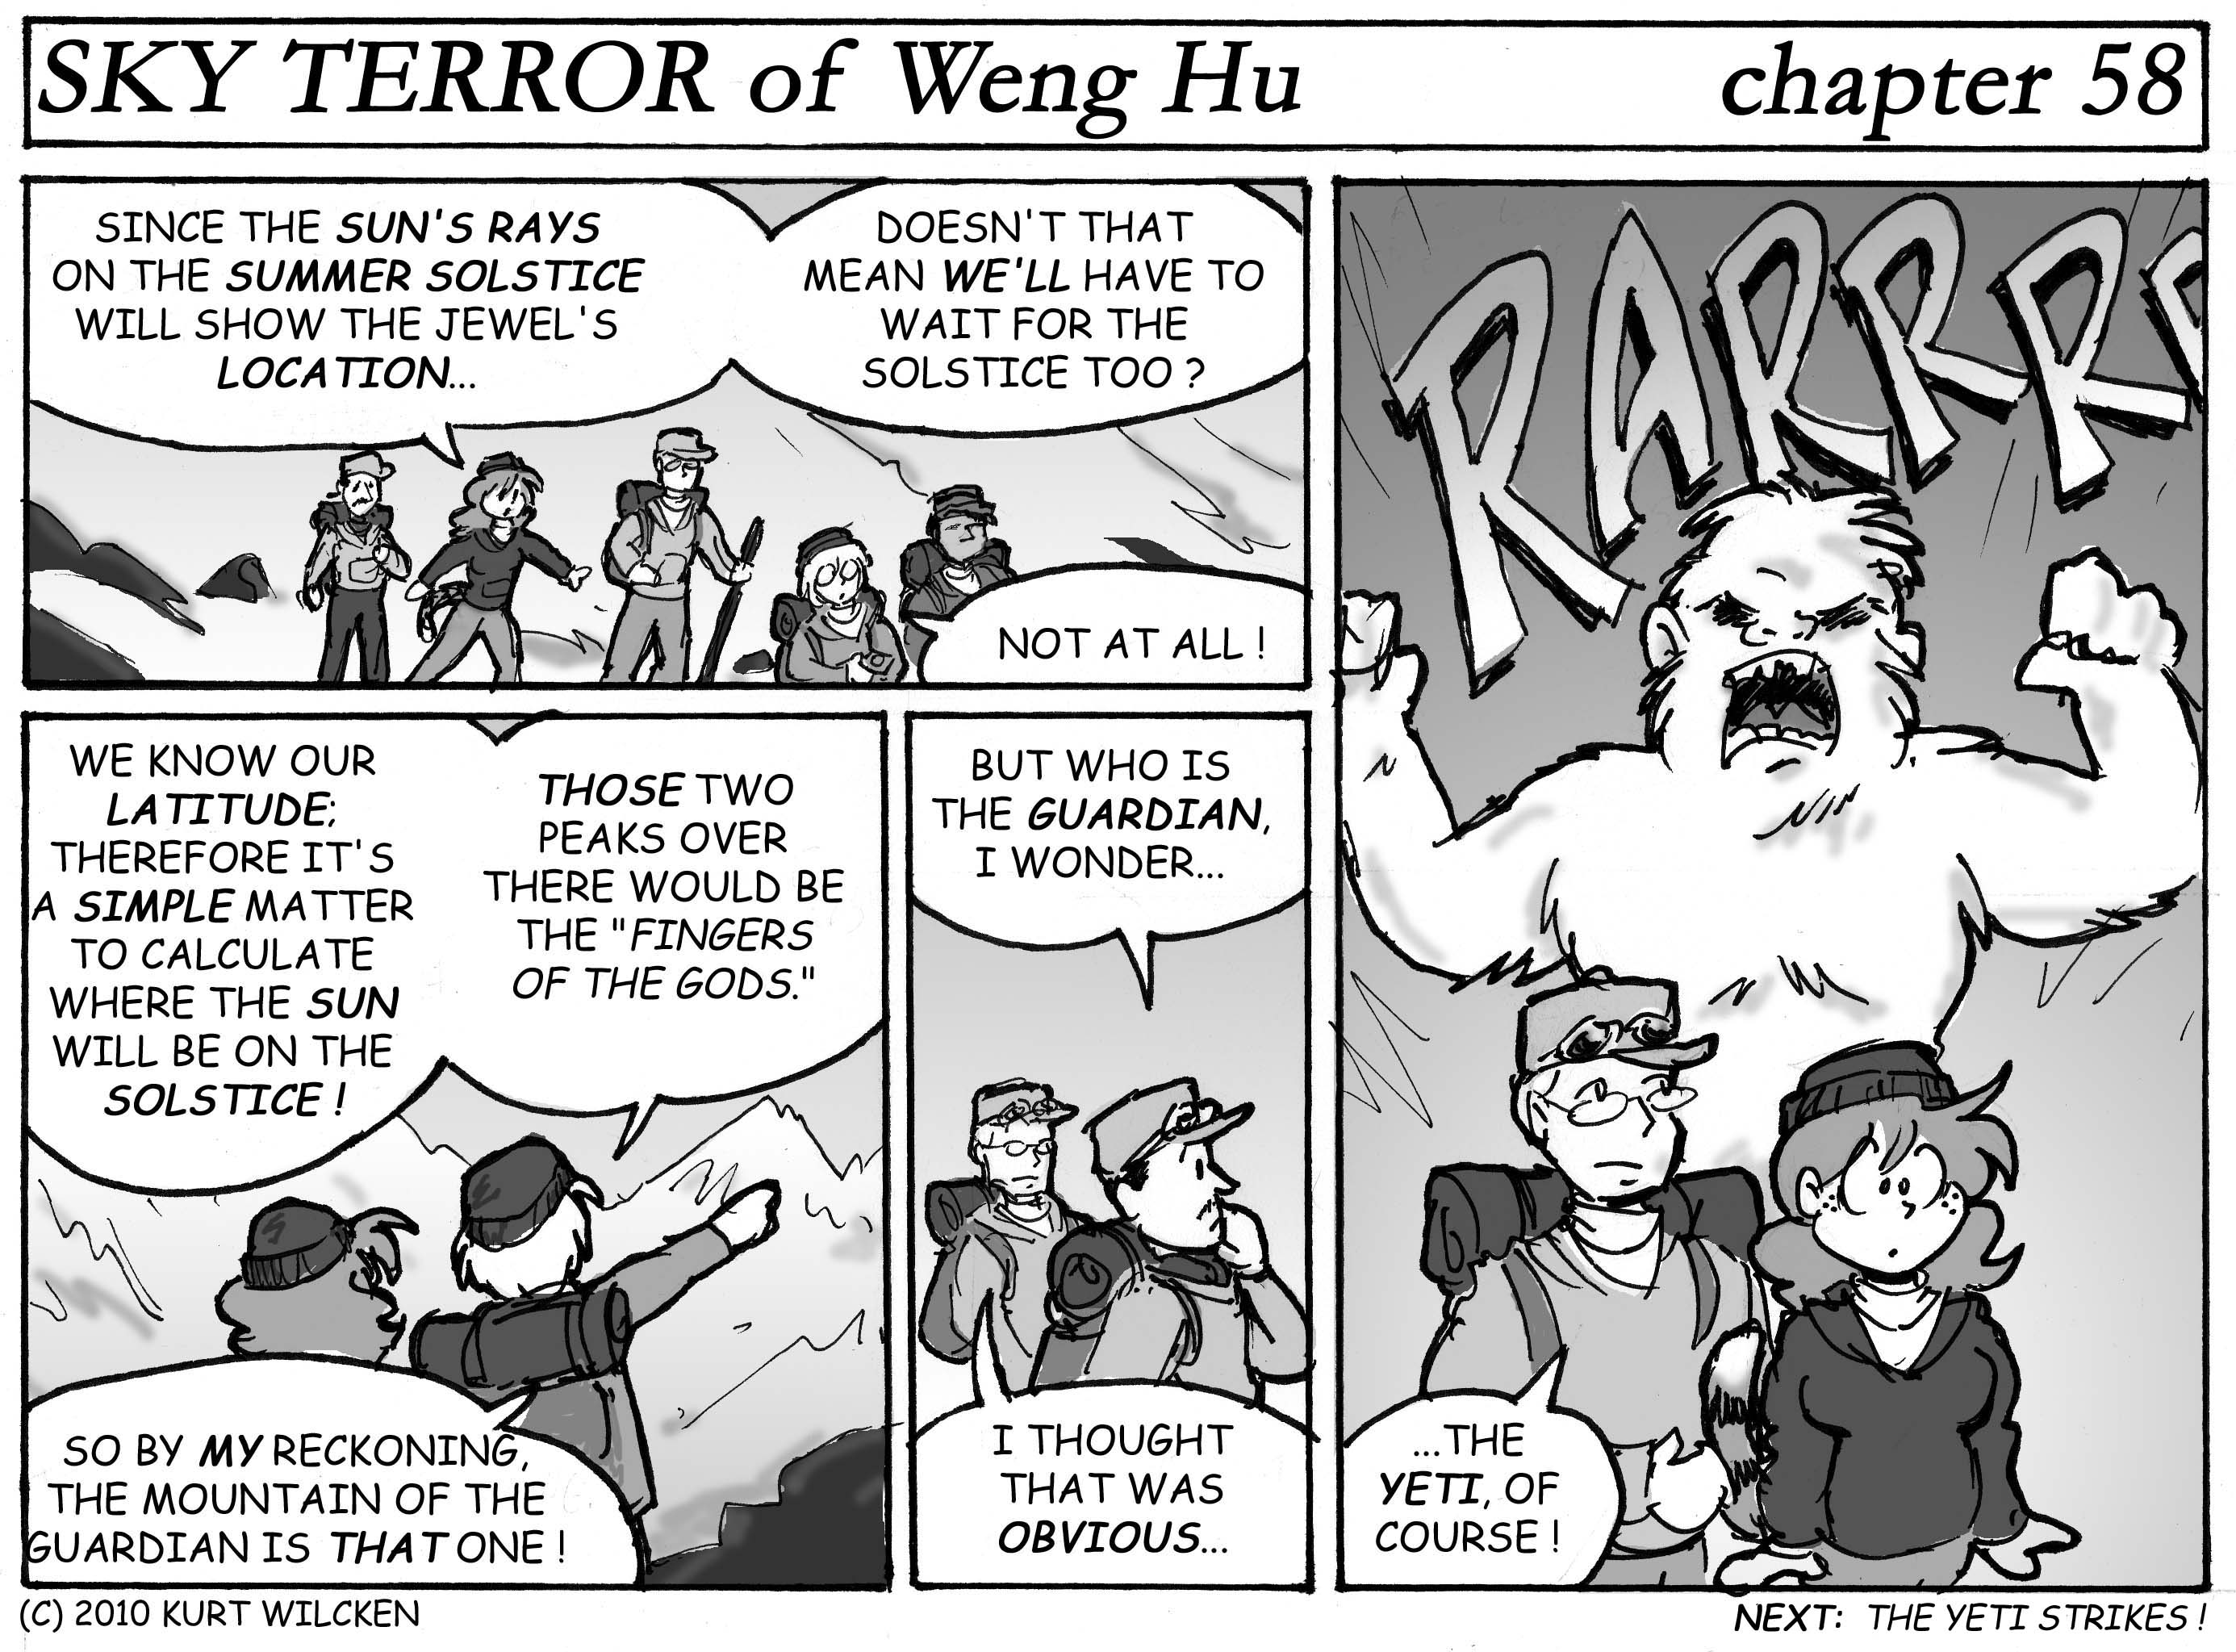 SKY TERROR of Weng Hu:  Chapter 58 — Applied Mathematics